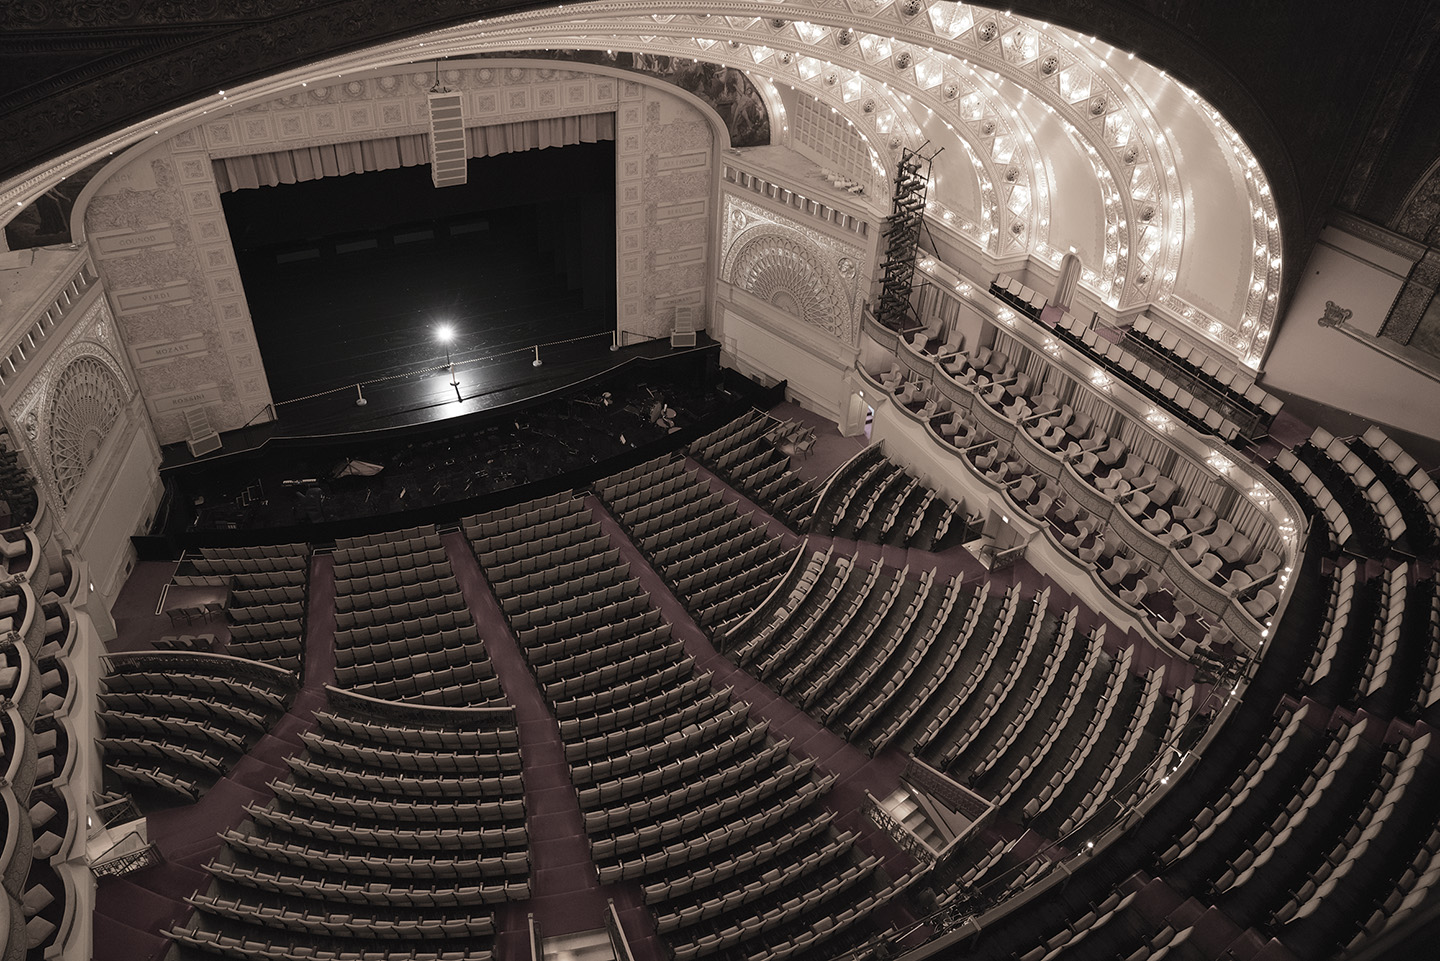 The Auditorium Theatre and its balconies have been the site of numerous ghost encounters.